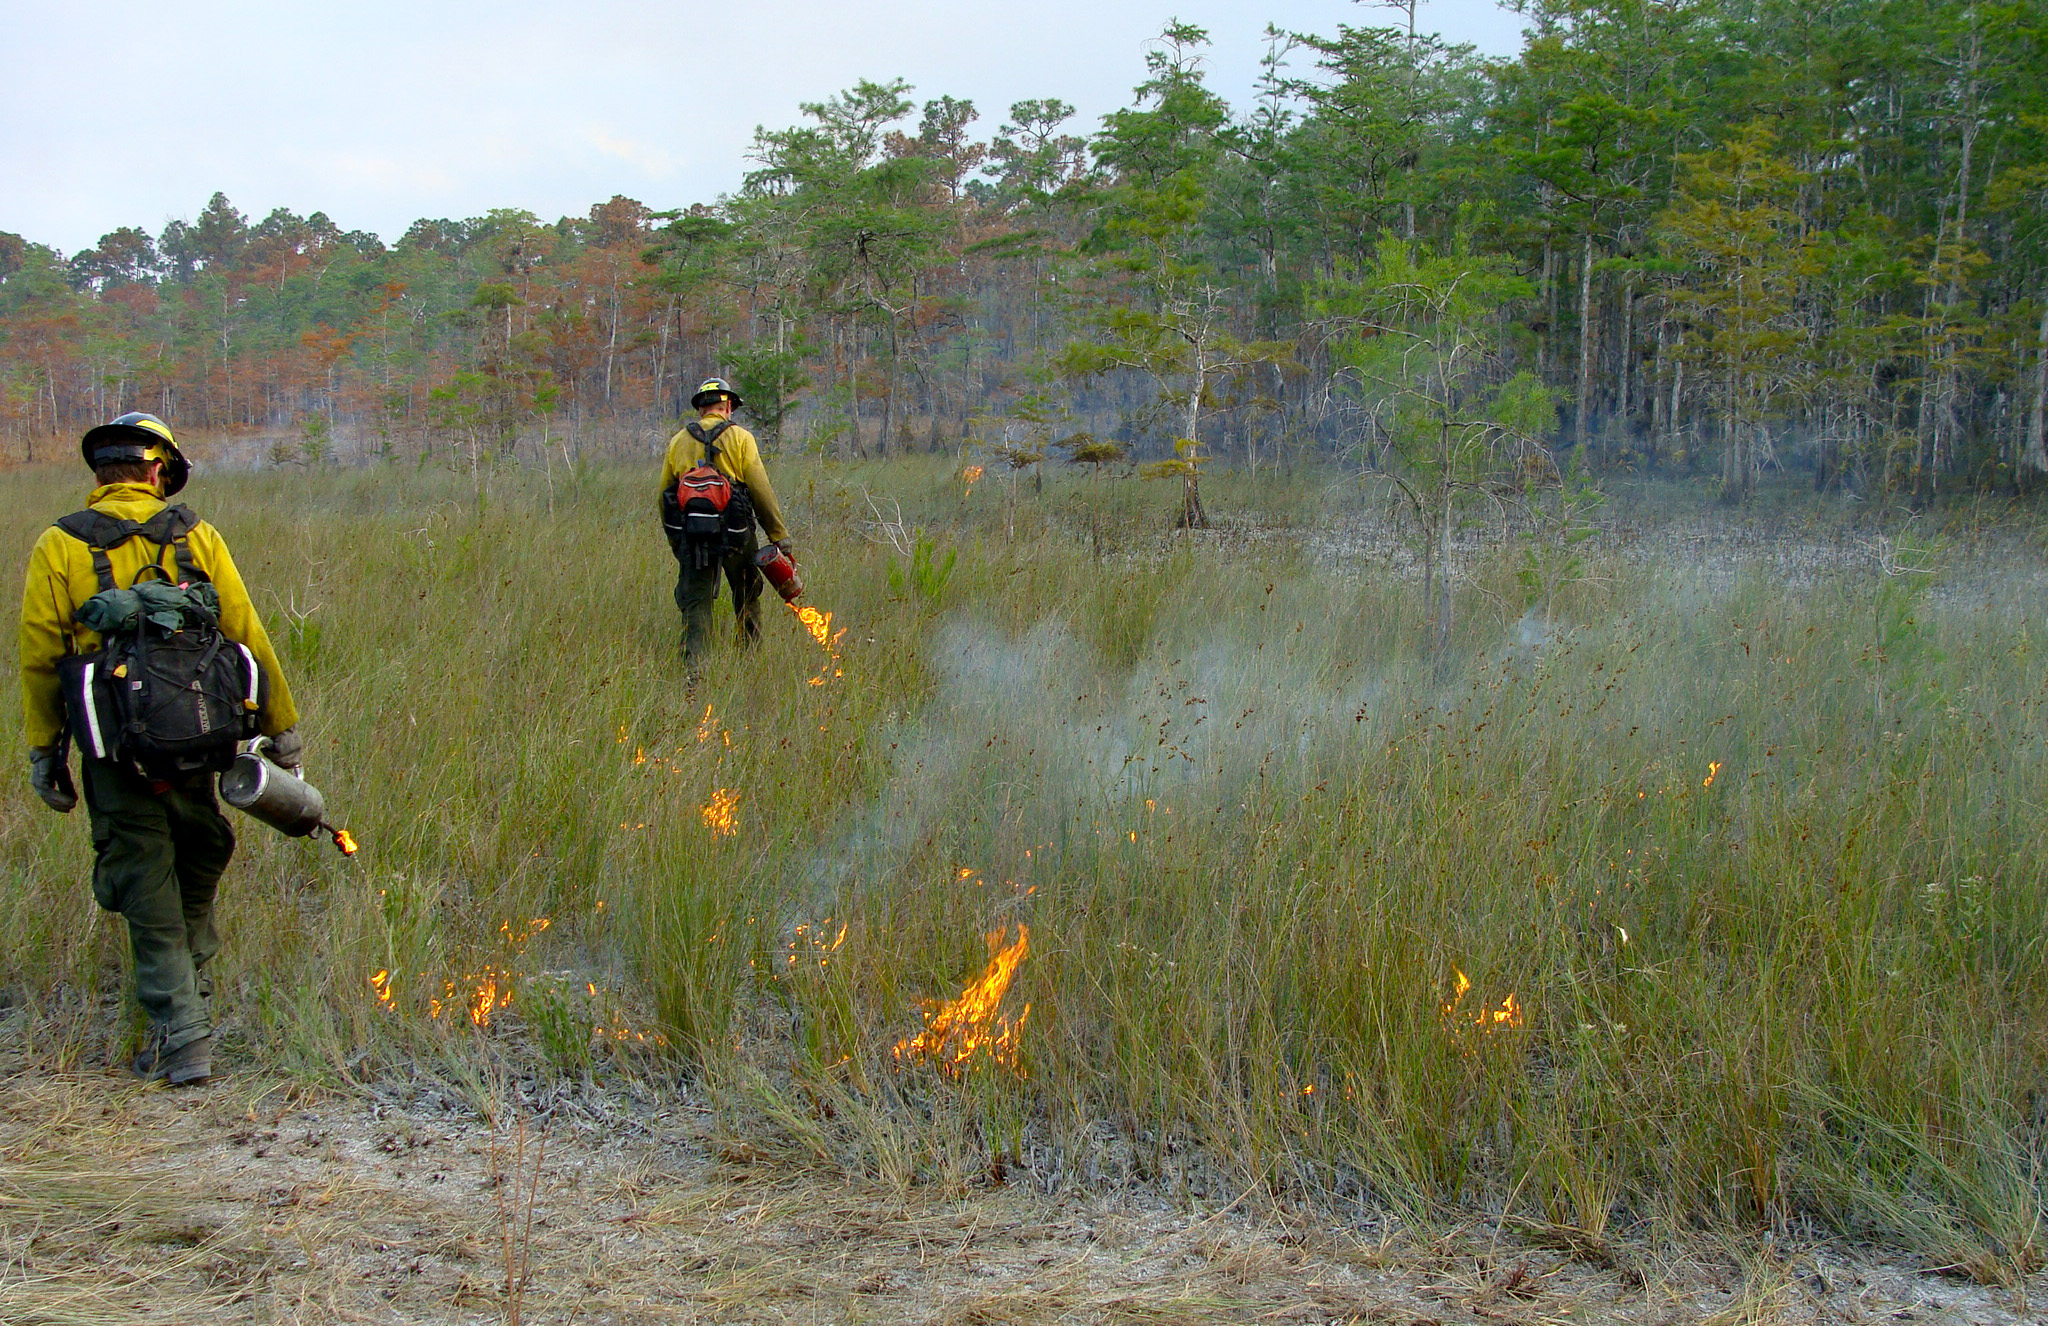 Firefighters starting a prescribed fire